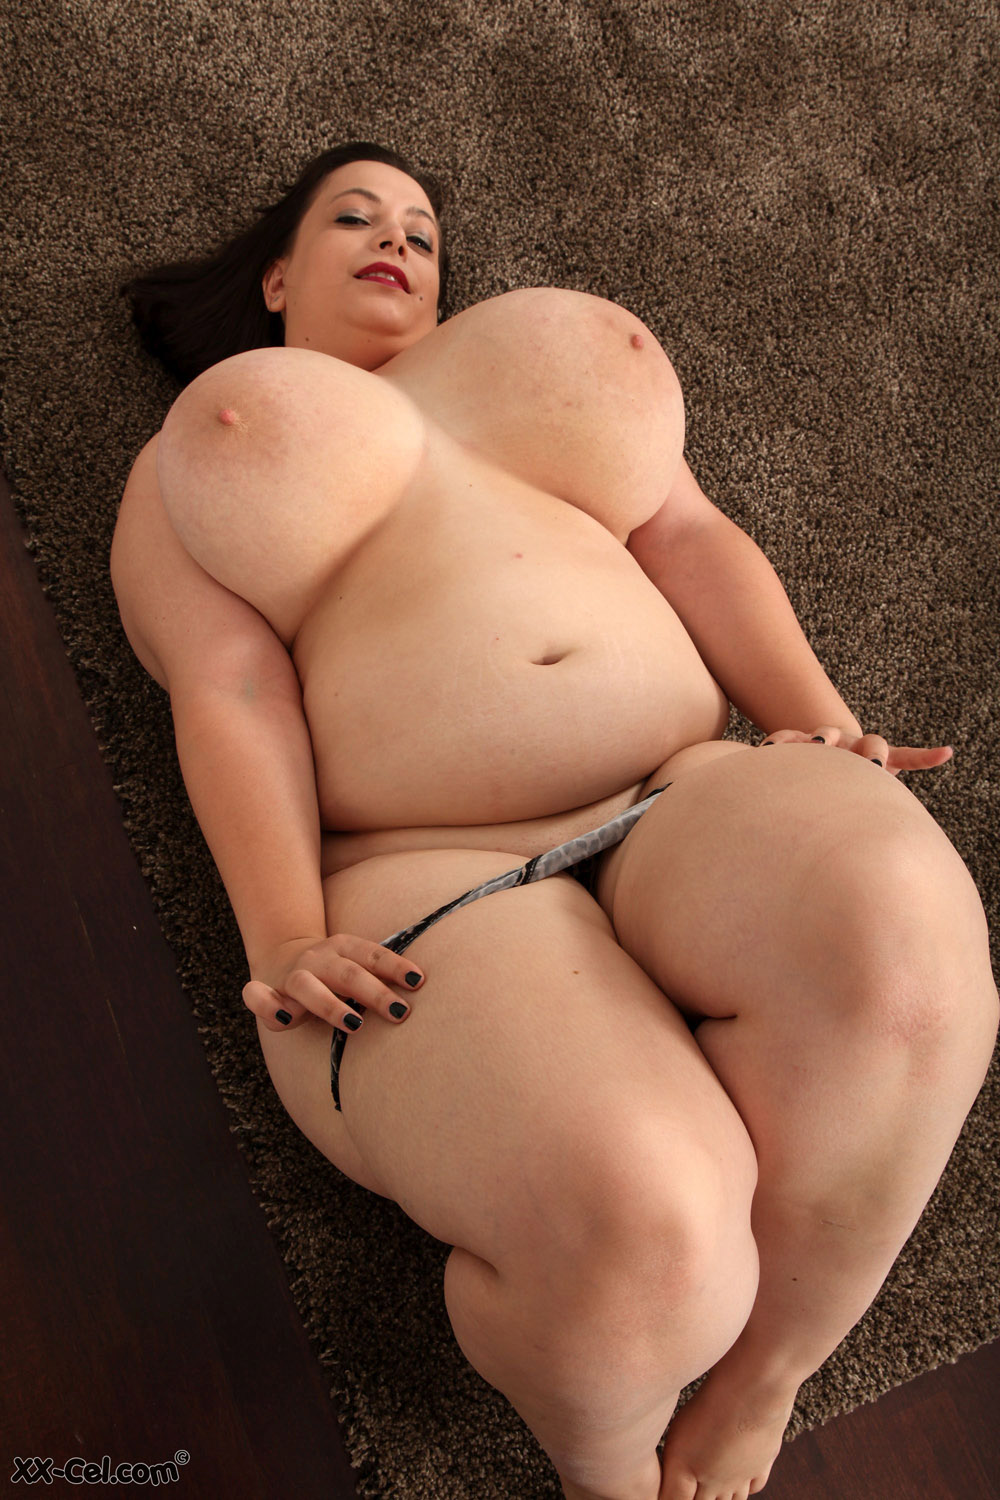 She is so hot and horny